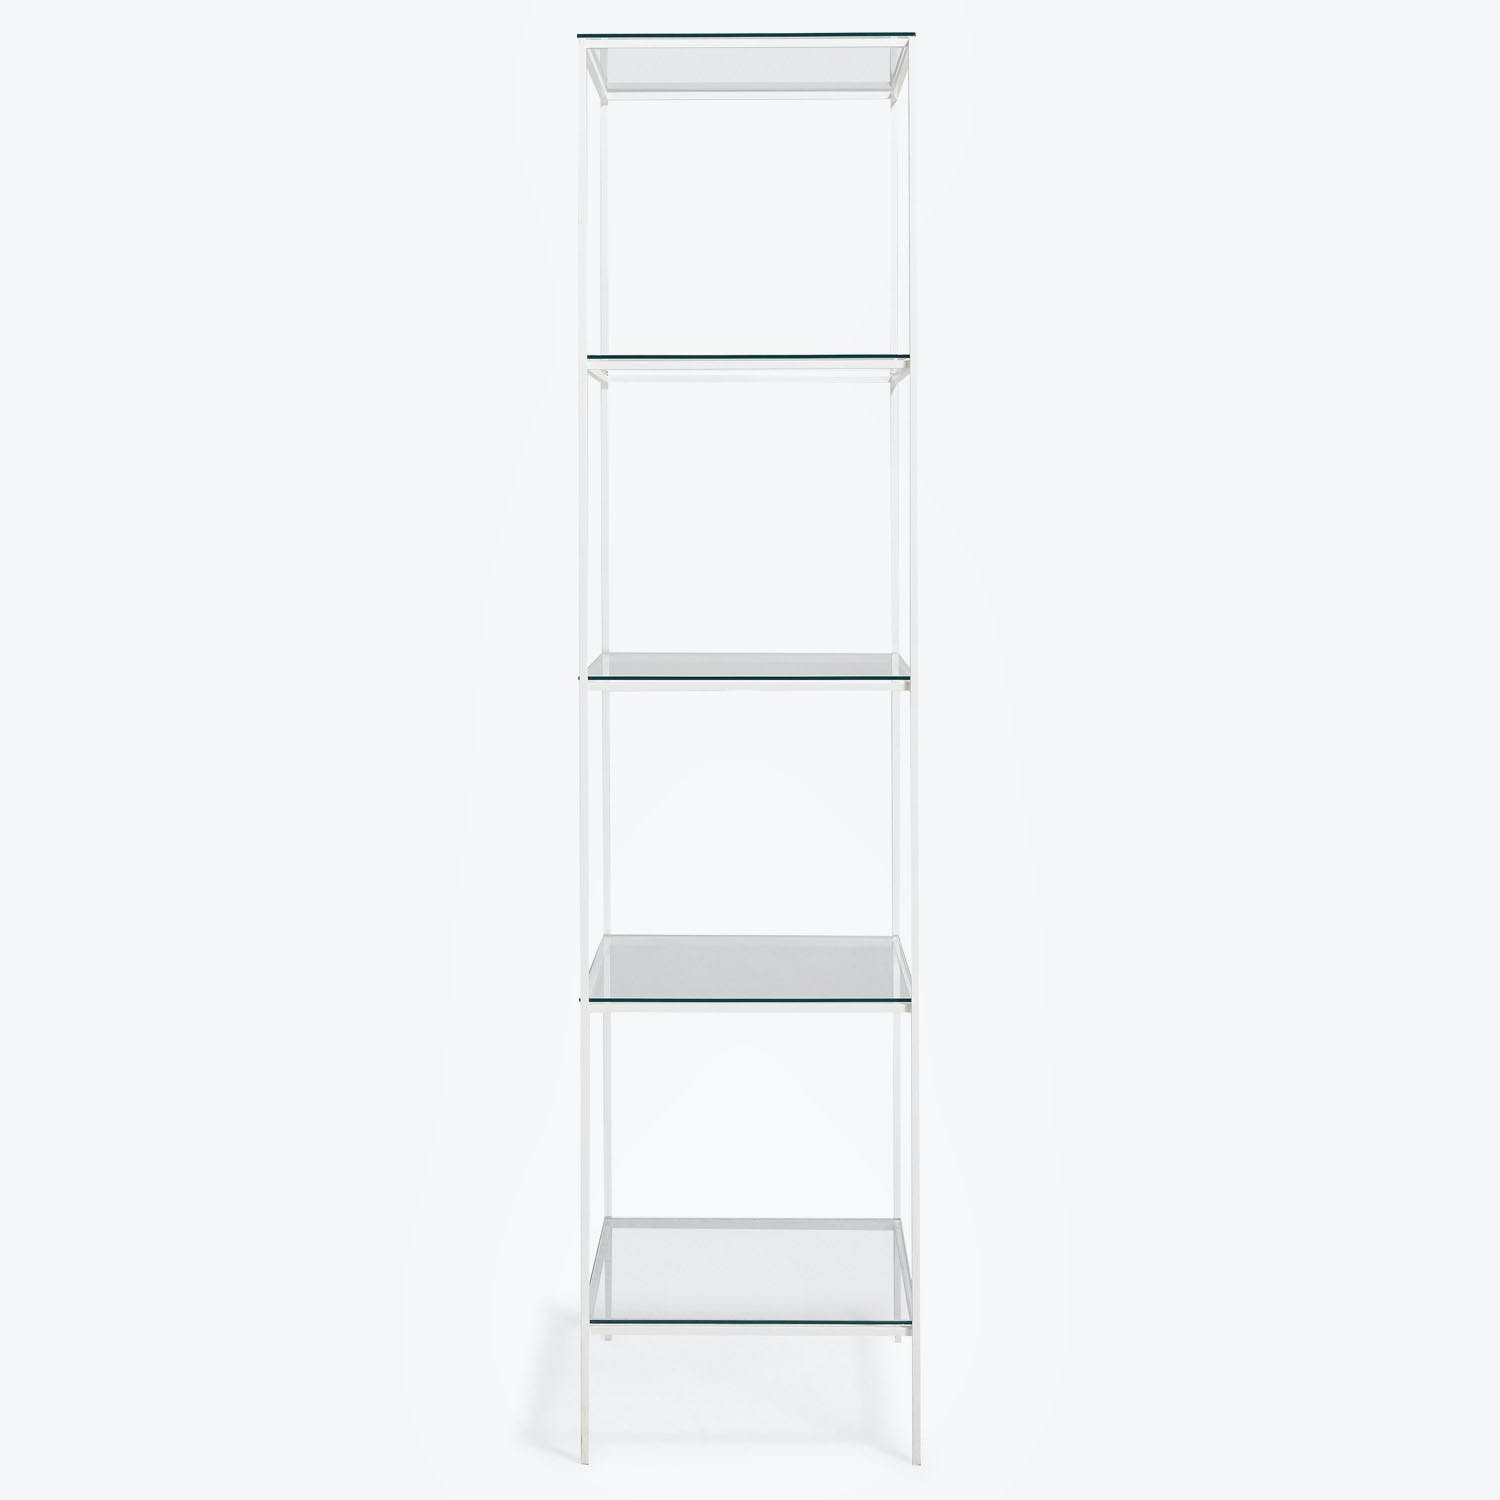 Product Image - Synthesis Glass 5-Tier Narrow Bookcase White